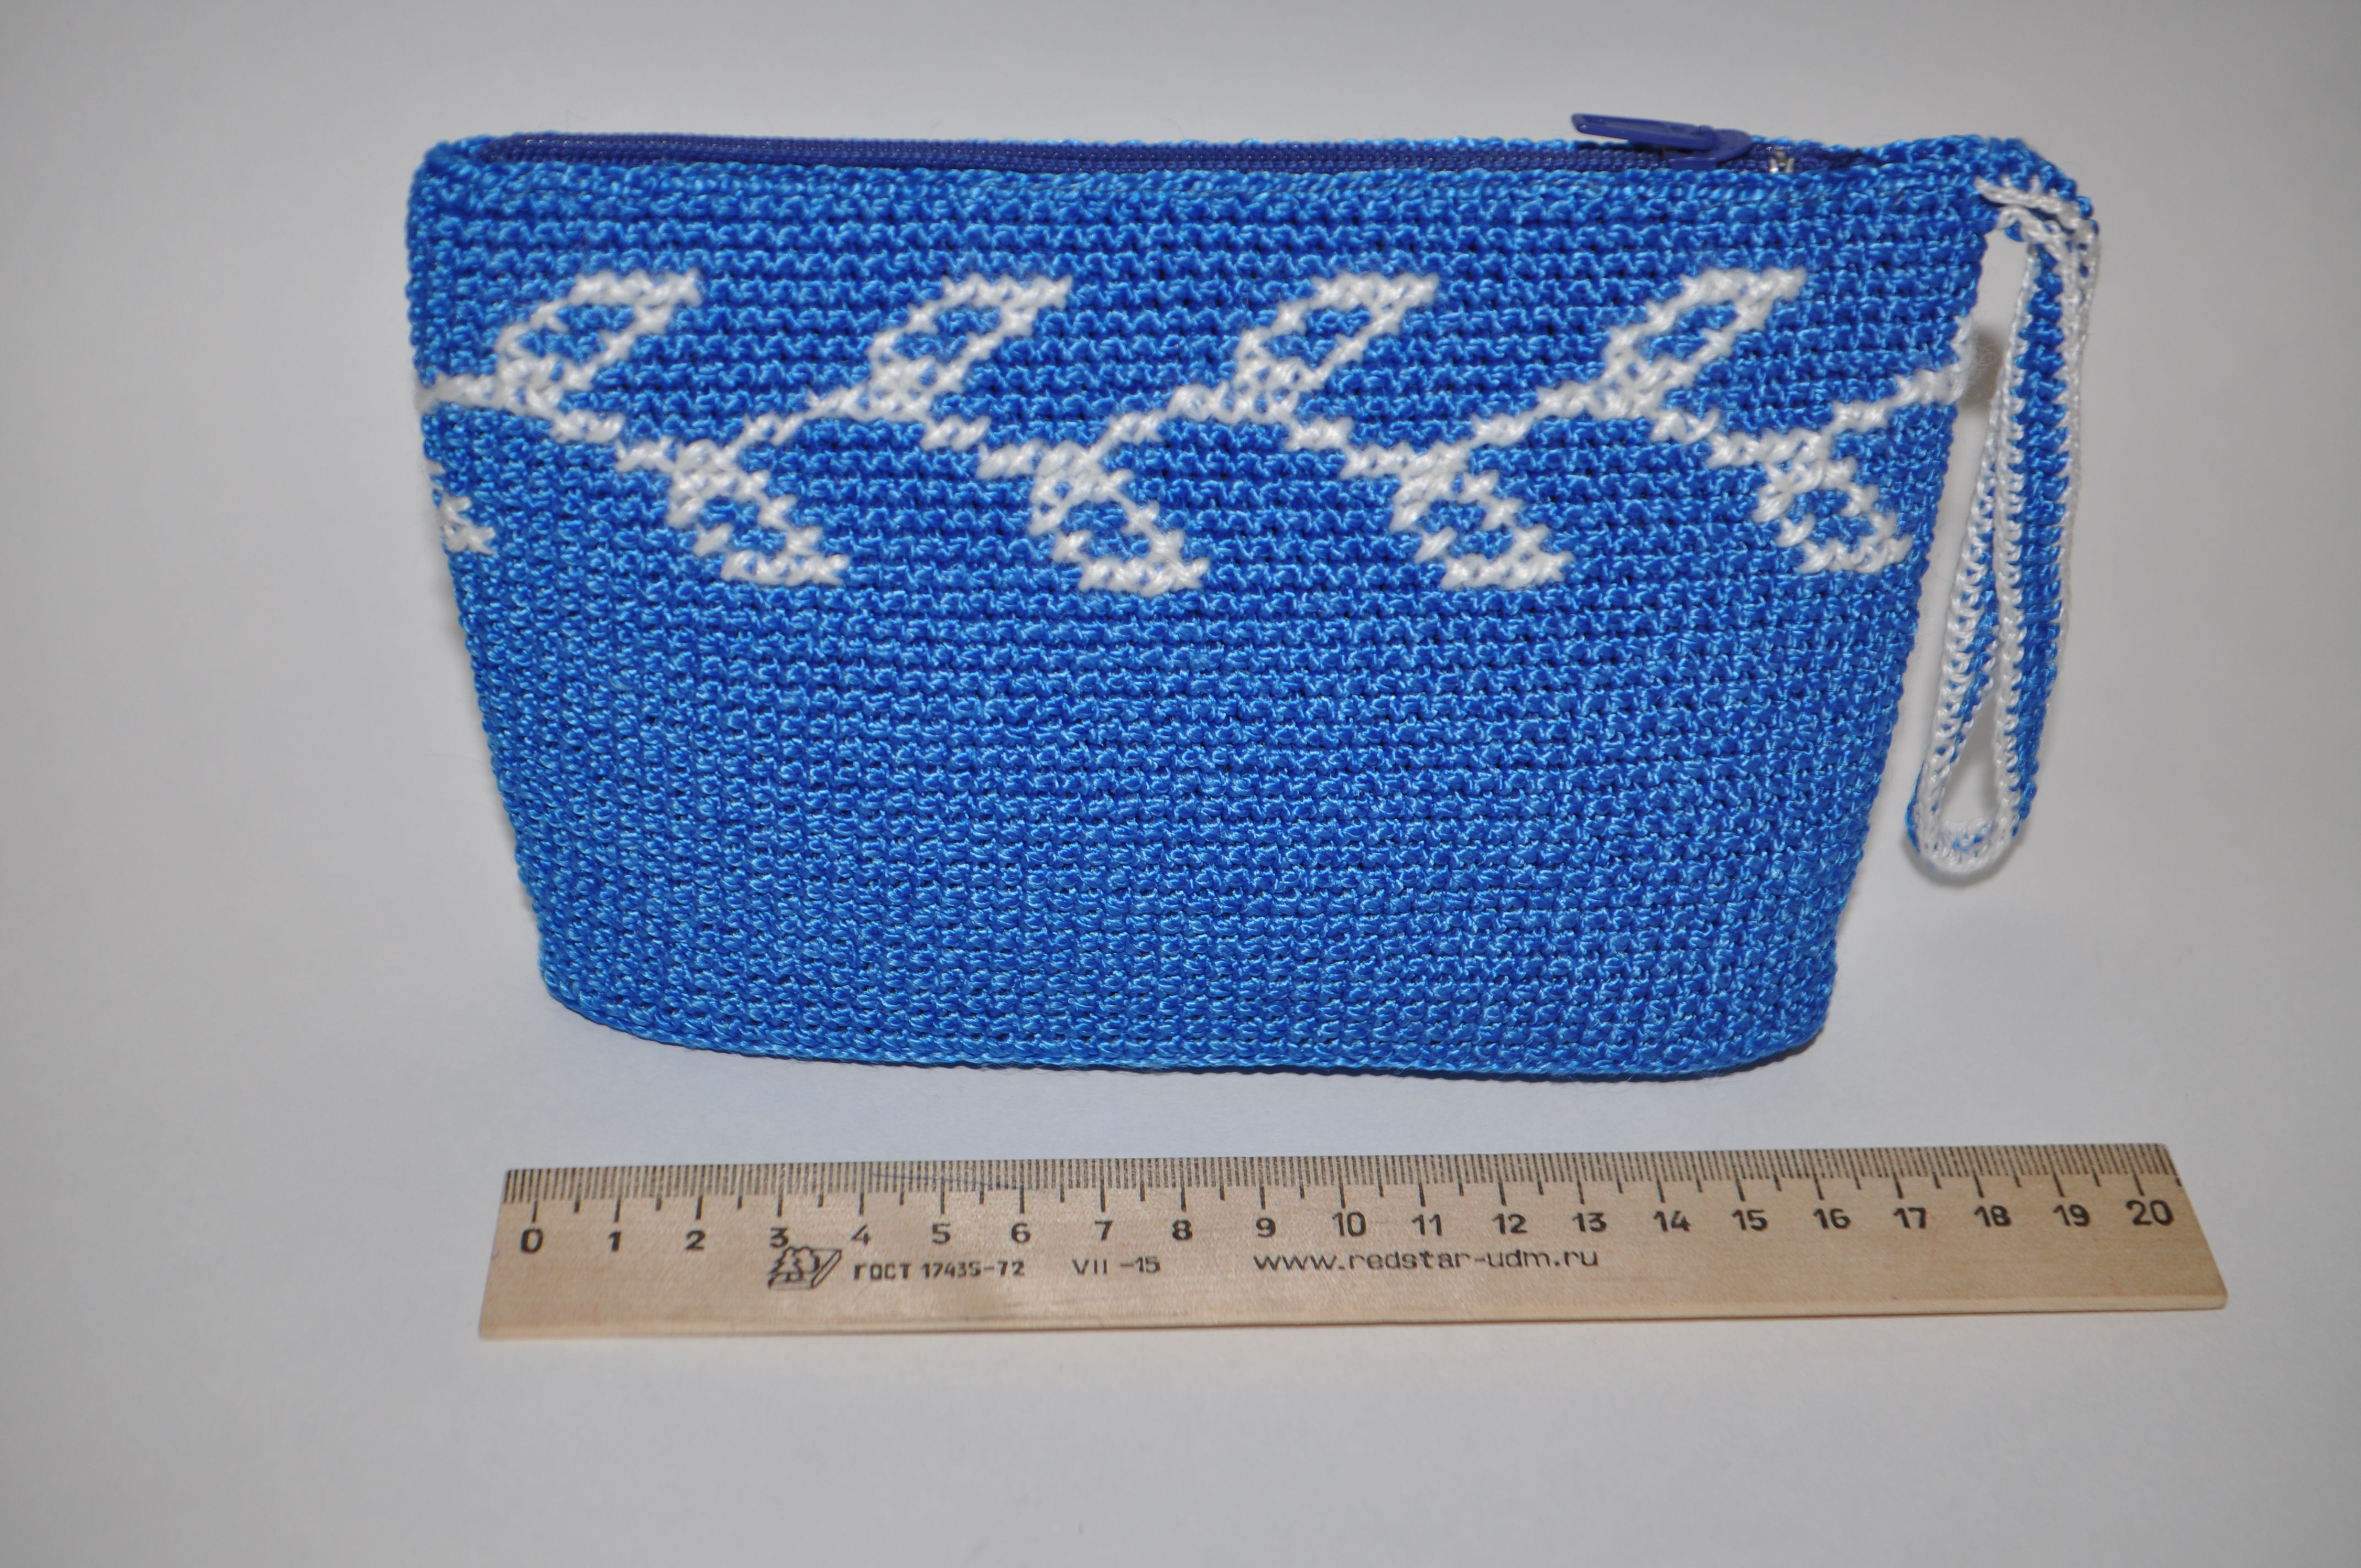 bag souvenir holiday white crossstitch cosmeticsbag clutch gift newtear zip knit cosmetics christmas handmade blue crocheted embroidery